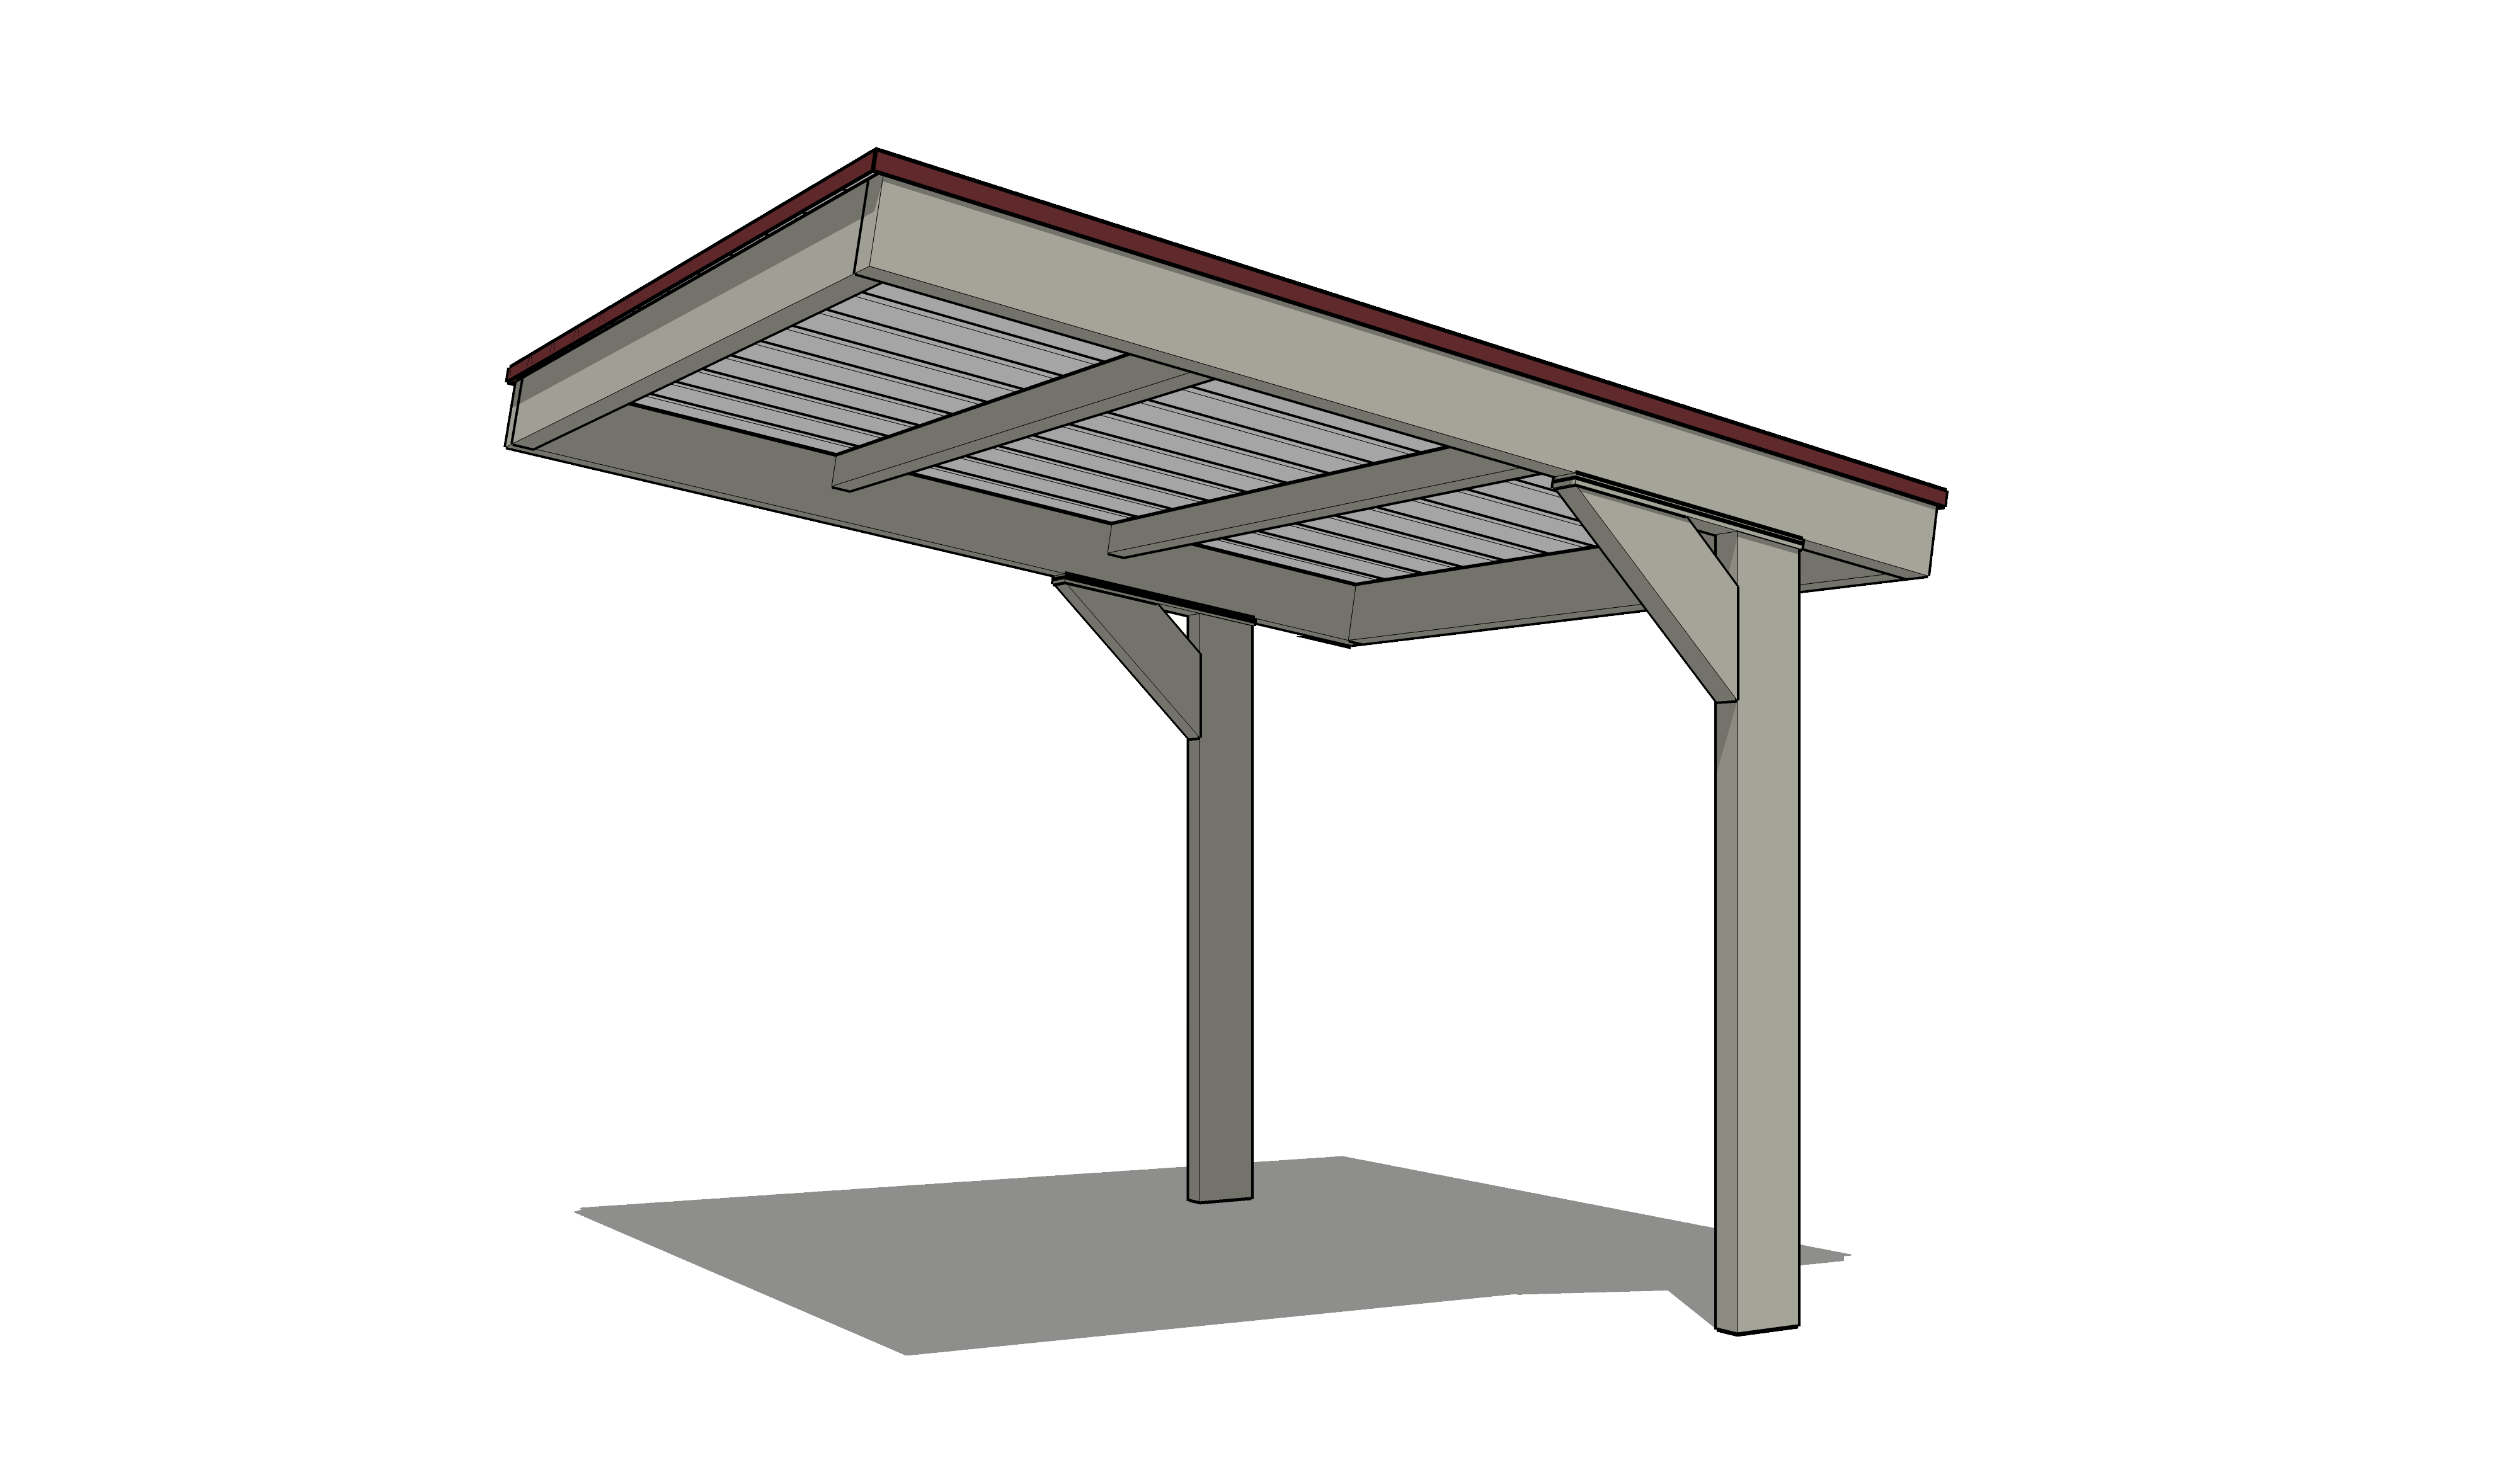 Angled Roof Steelworx Cantilevered Monoslopes Amp Dugouts Coverworx